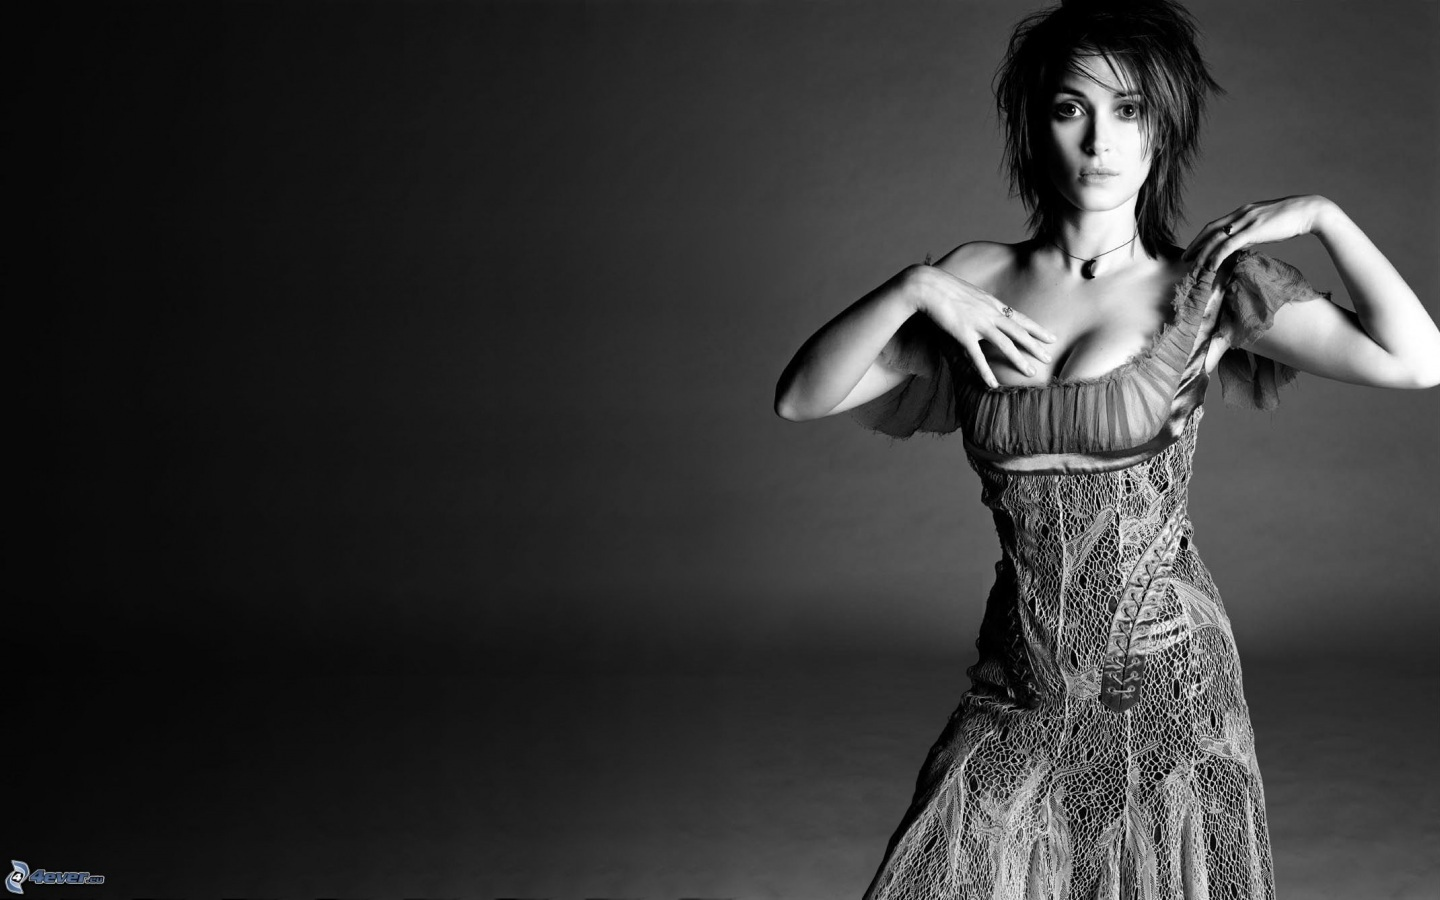 http://cdn29.us1.fansshare.com/images/winonaryder/winona-ryder-black-and-white-photo-sexy-957125583.jpg